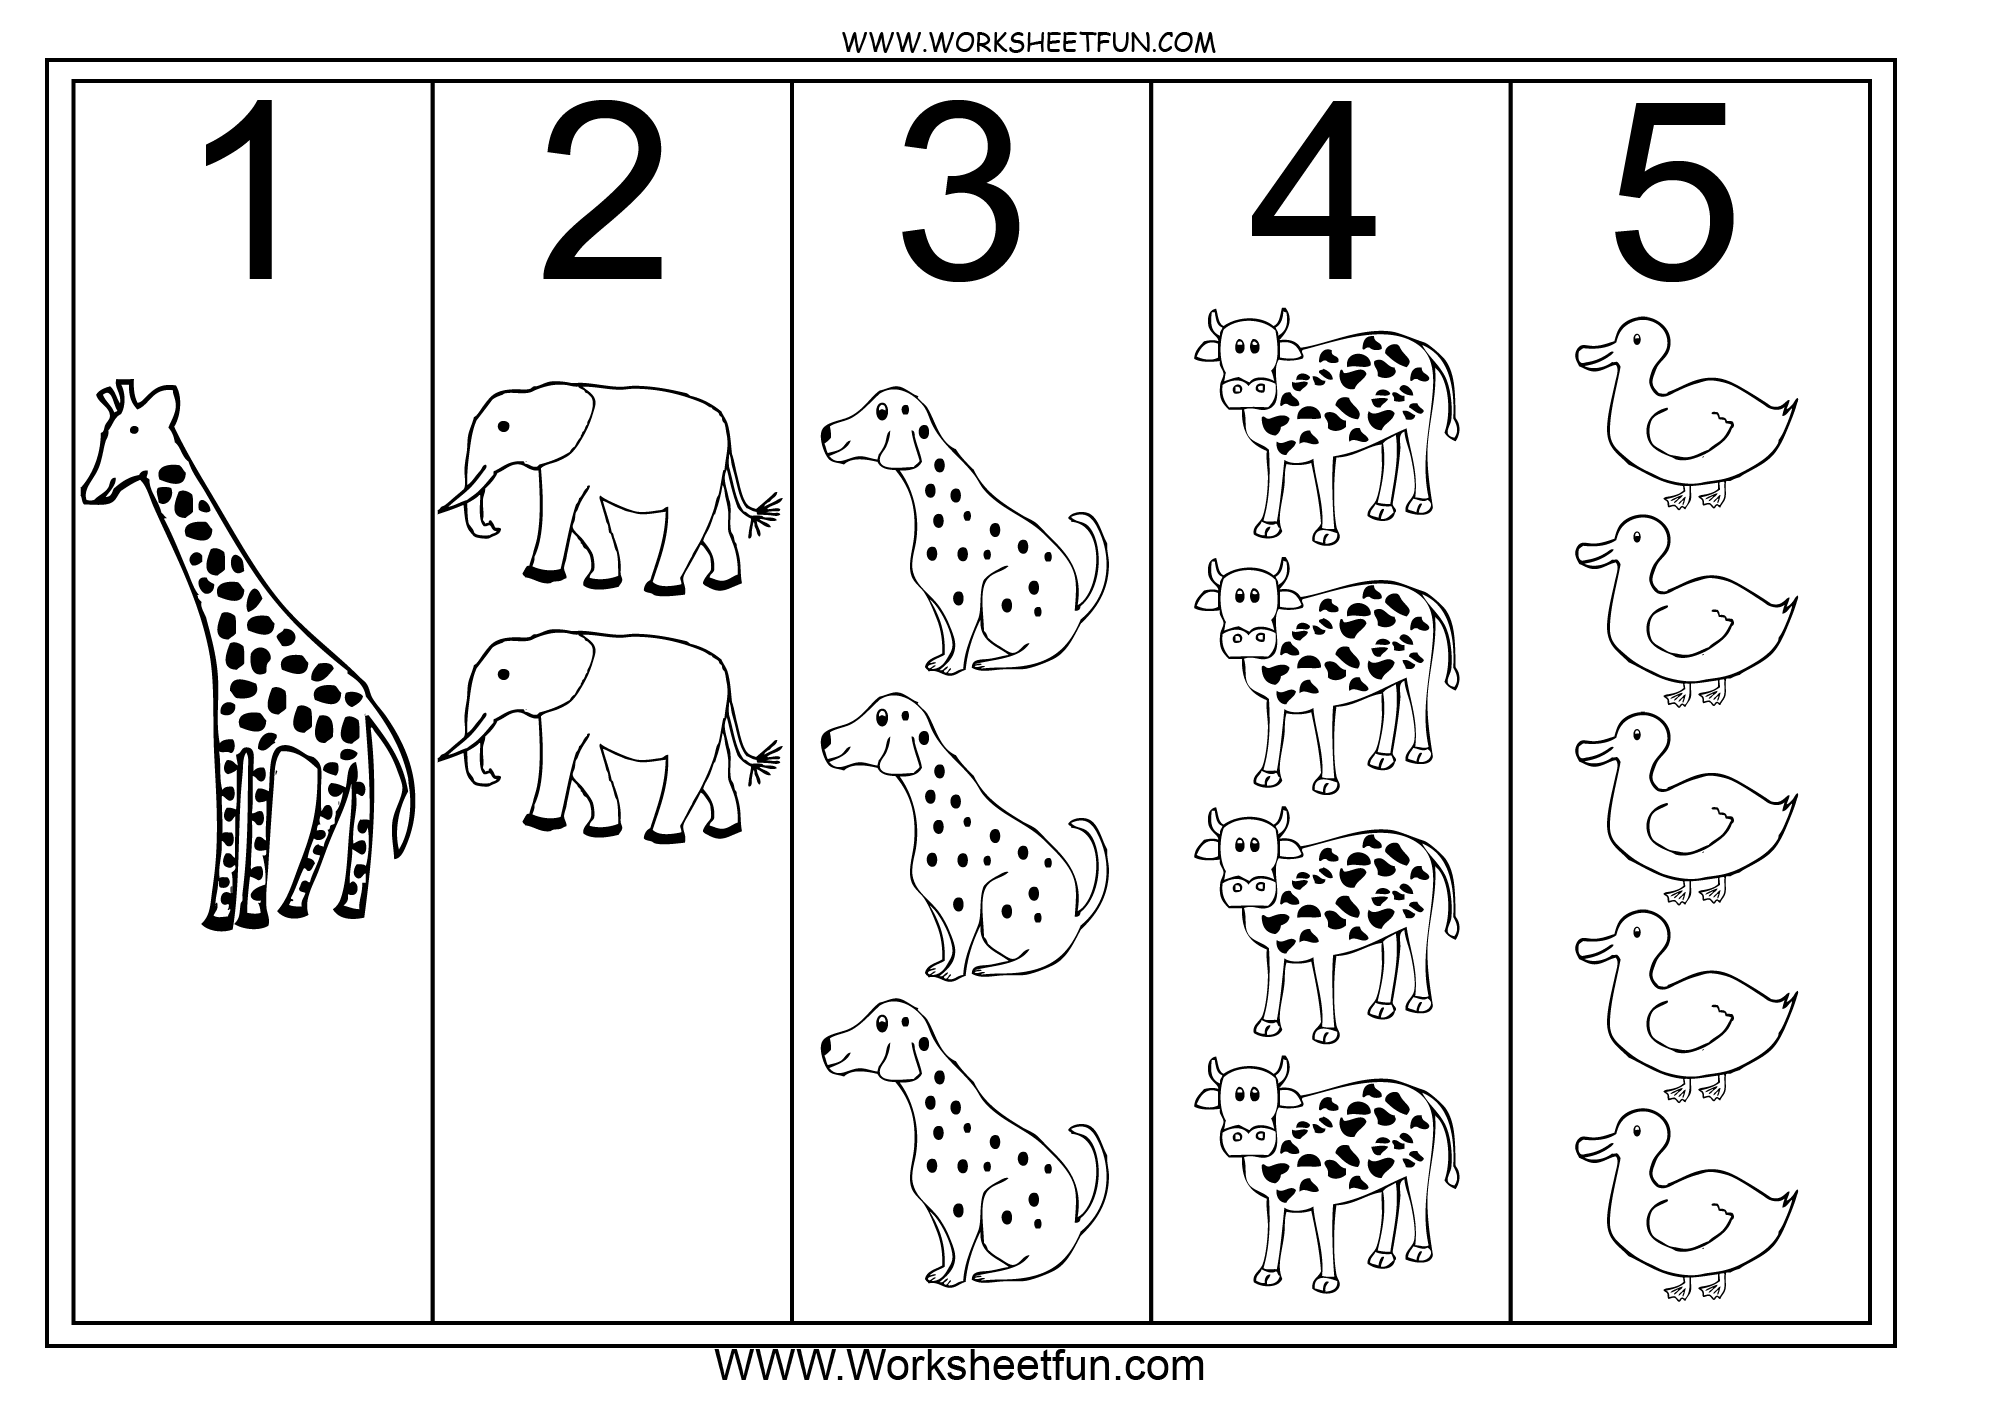 Preschool Numbers 1 10 Worksheets Deployday – Preschool Numbers Worksheets